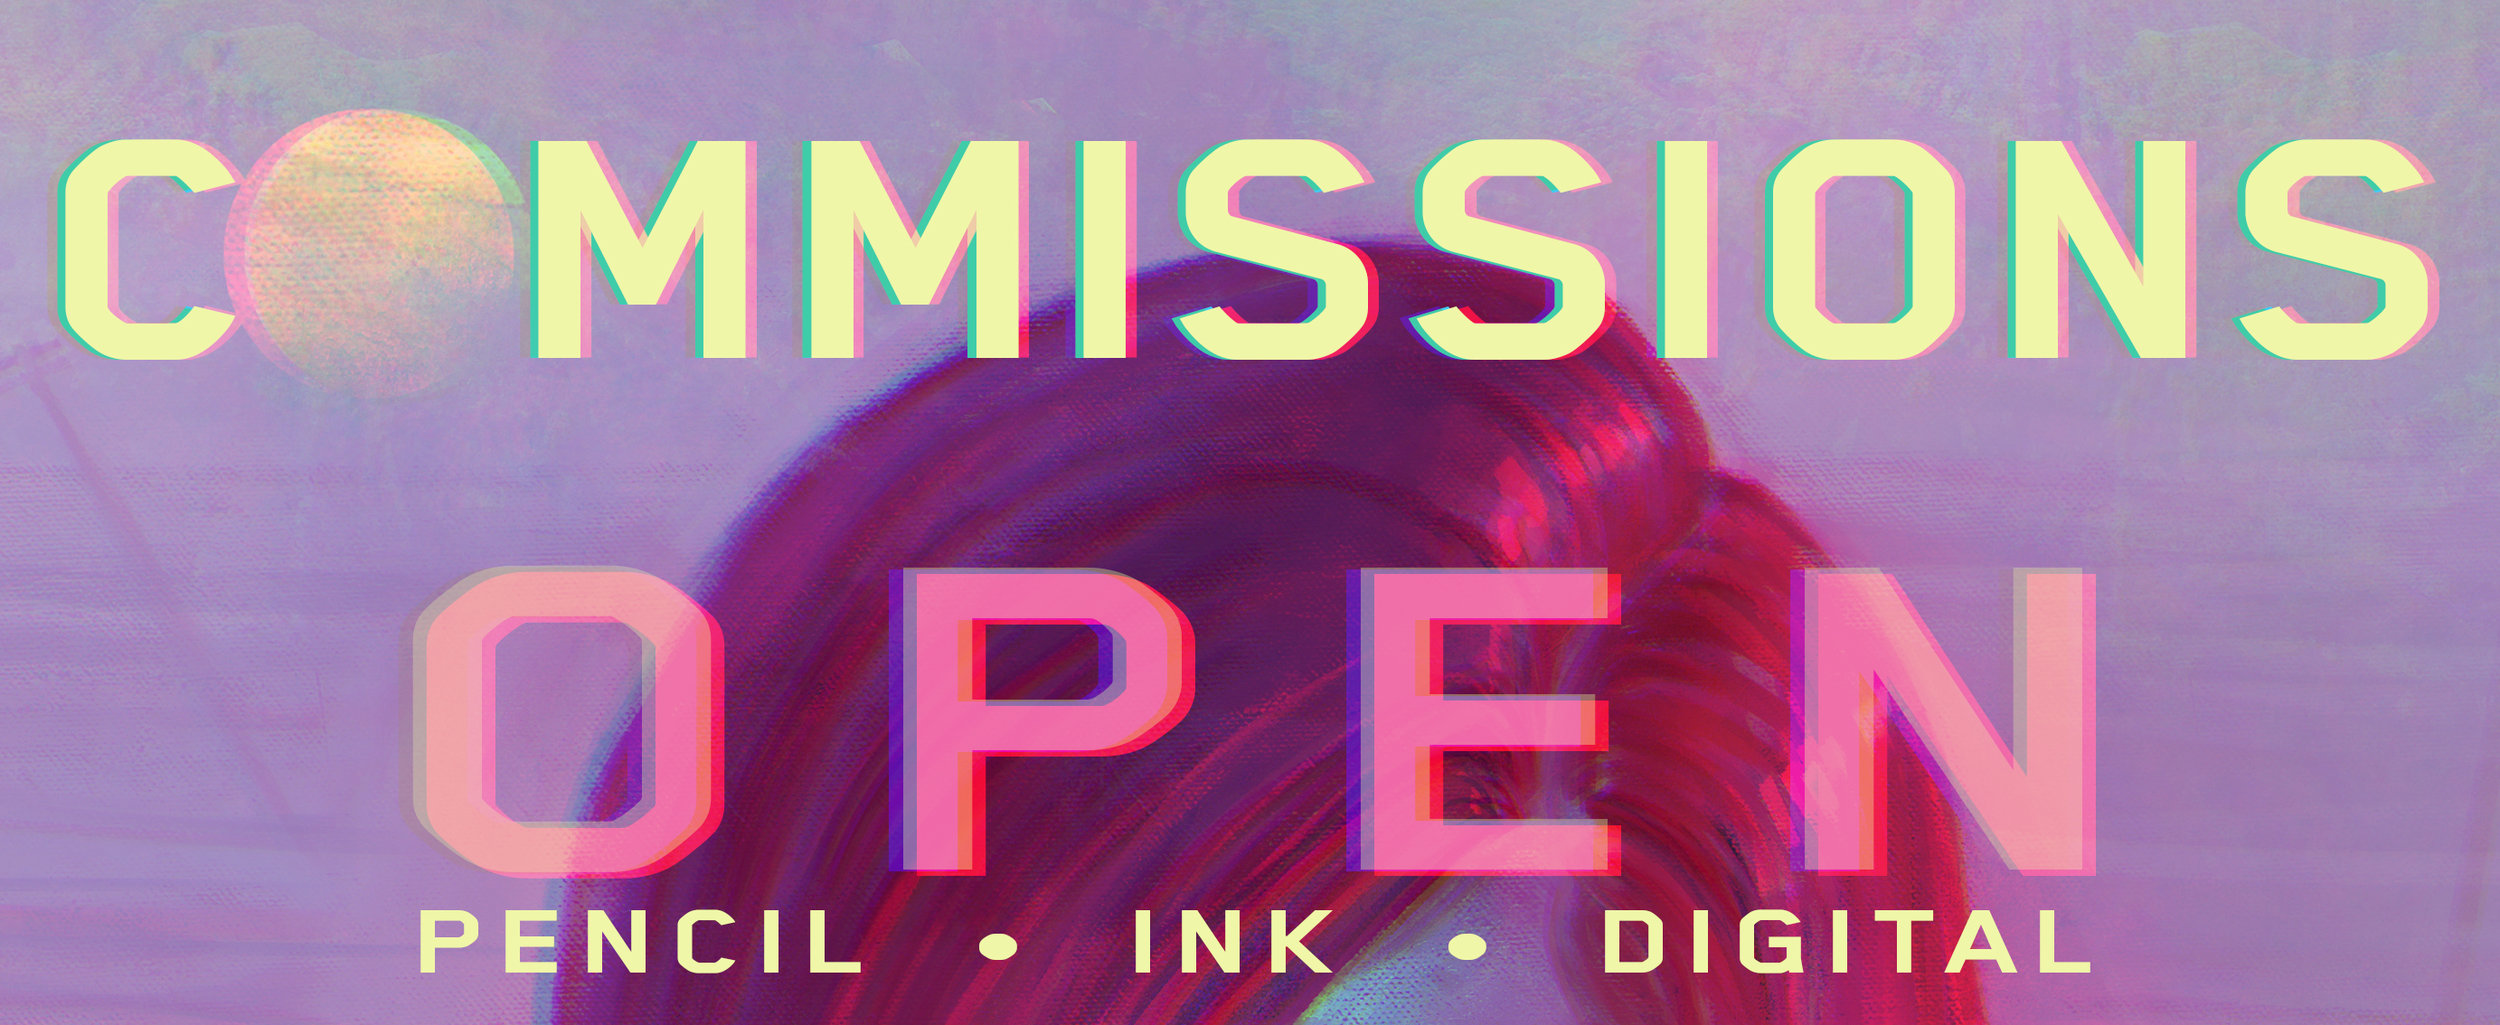 Commissions open blog title.jpg